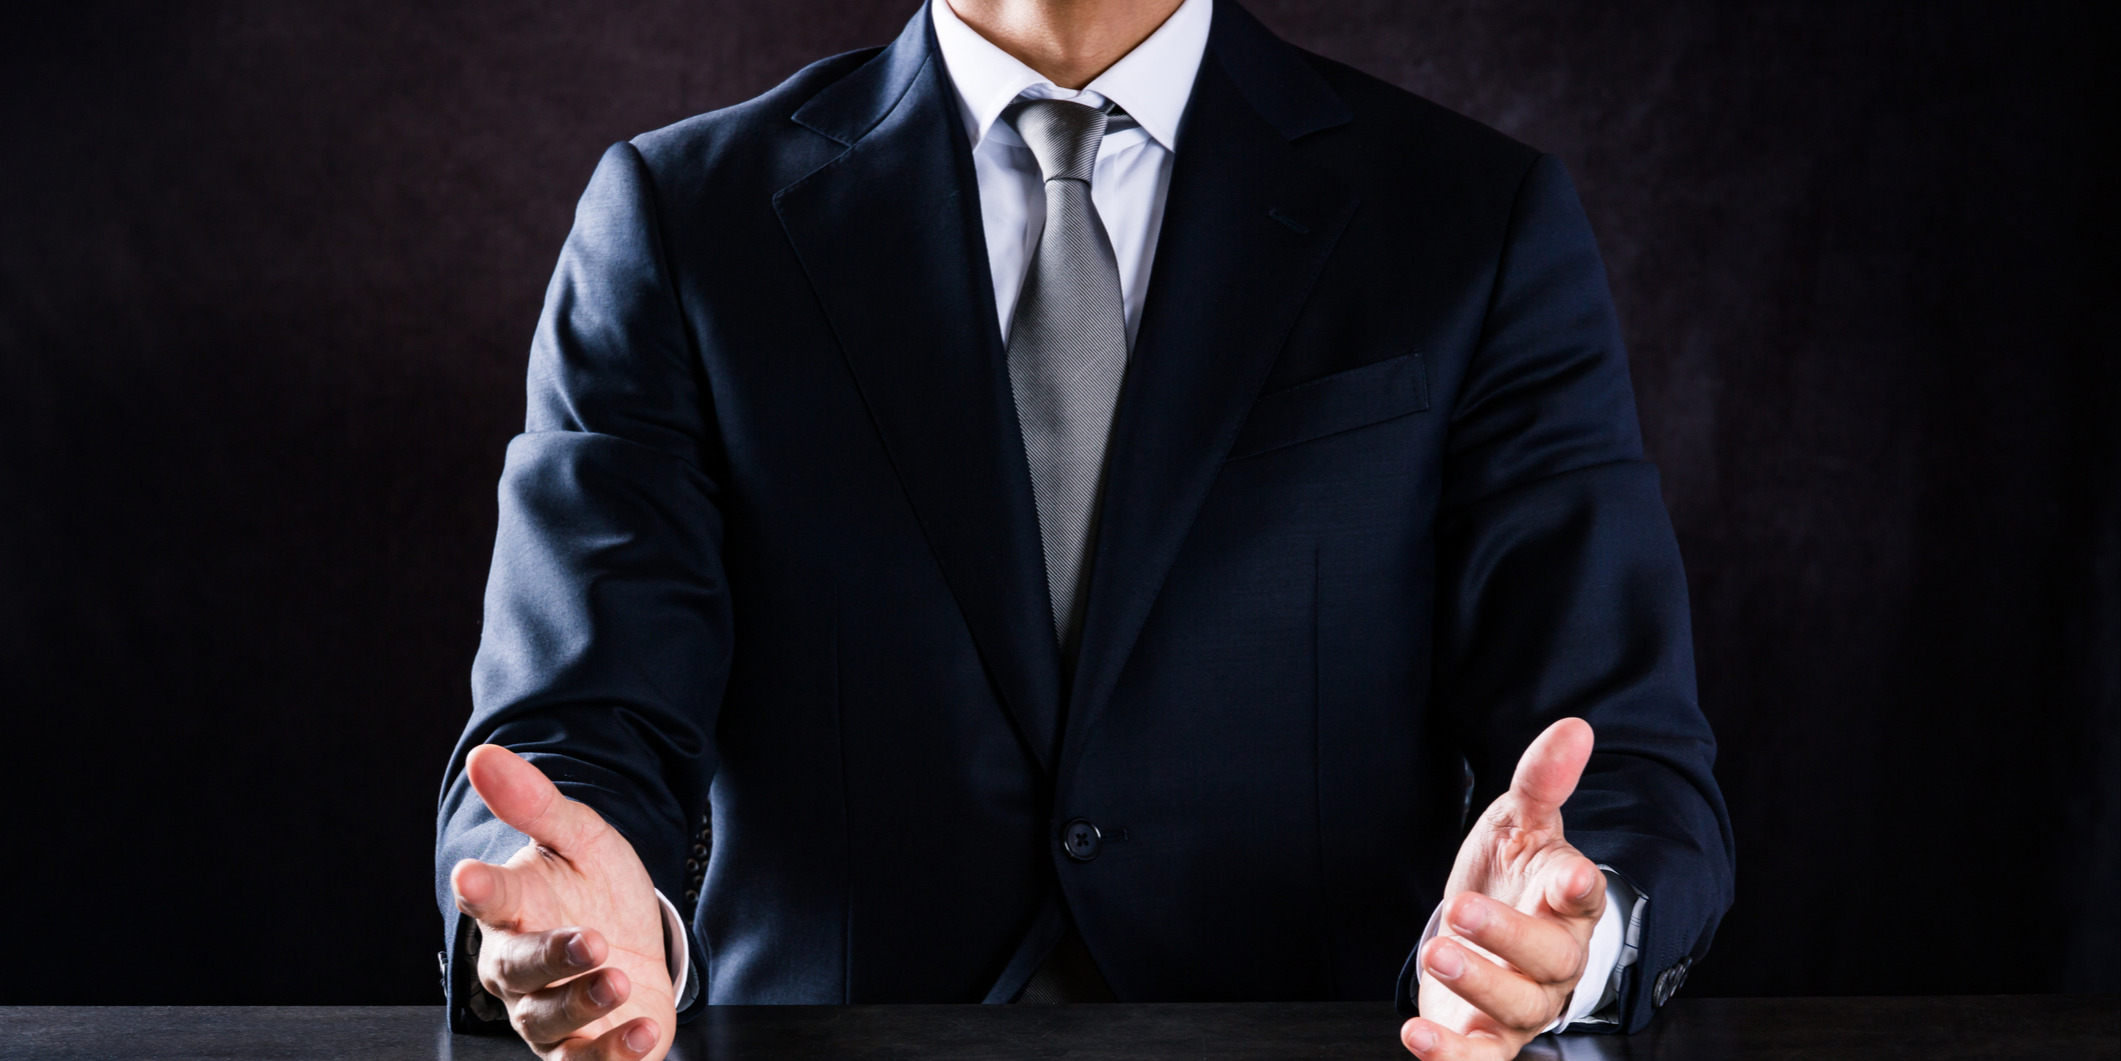 5 Common Complaints from Sales (And What to Do About Them)